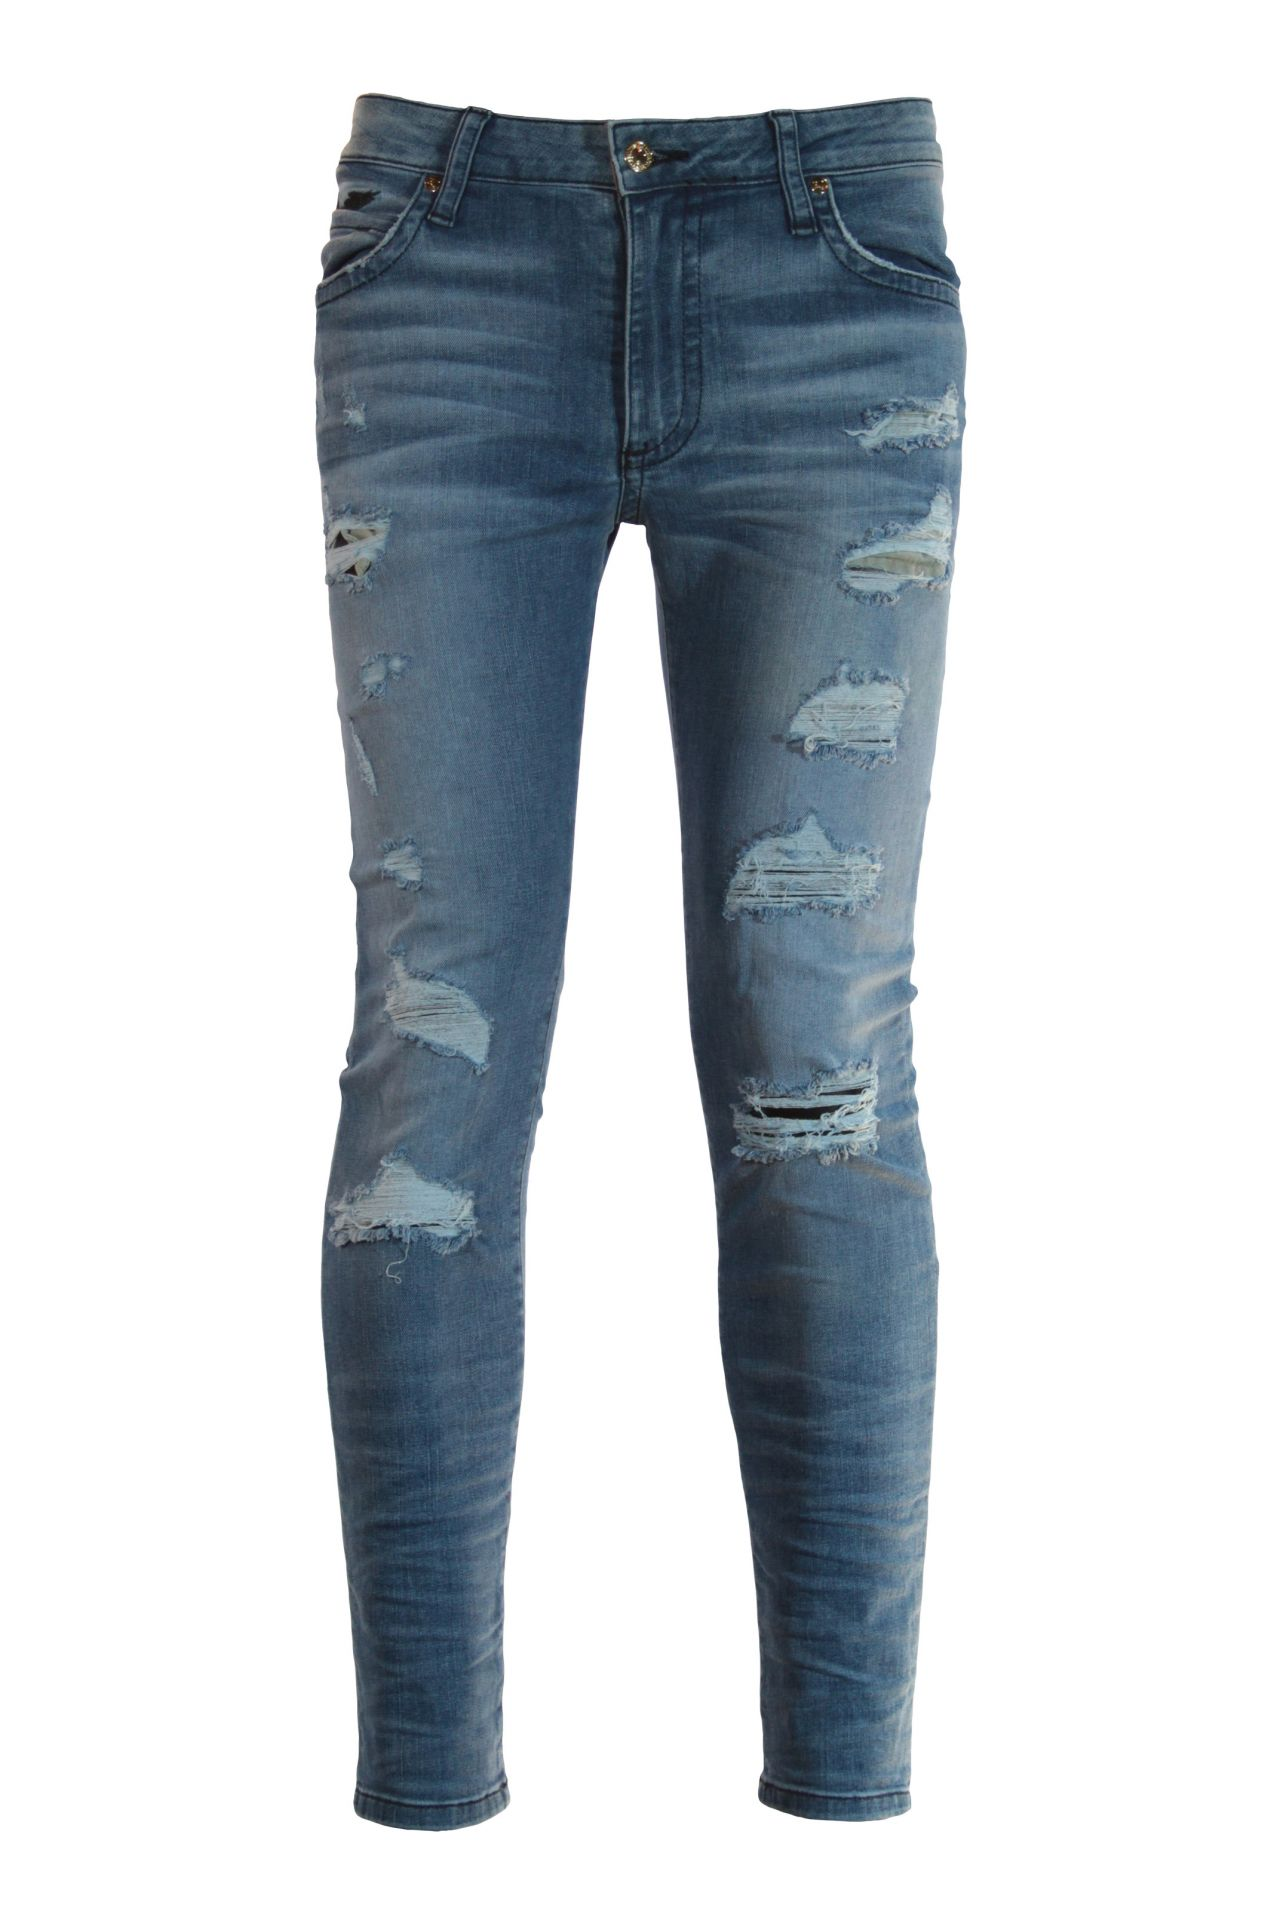 SKINNY LONG FLAP JEAN IN ELROY MEDIUM BROKEN BACKING WITH CRYSTALS